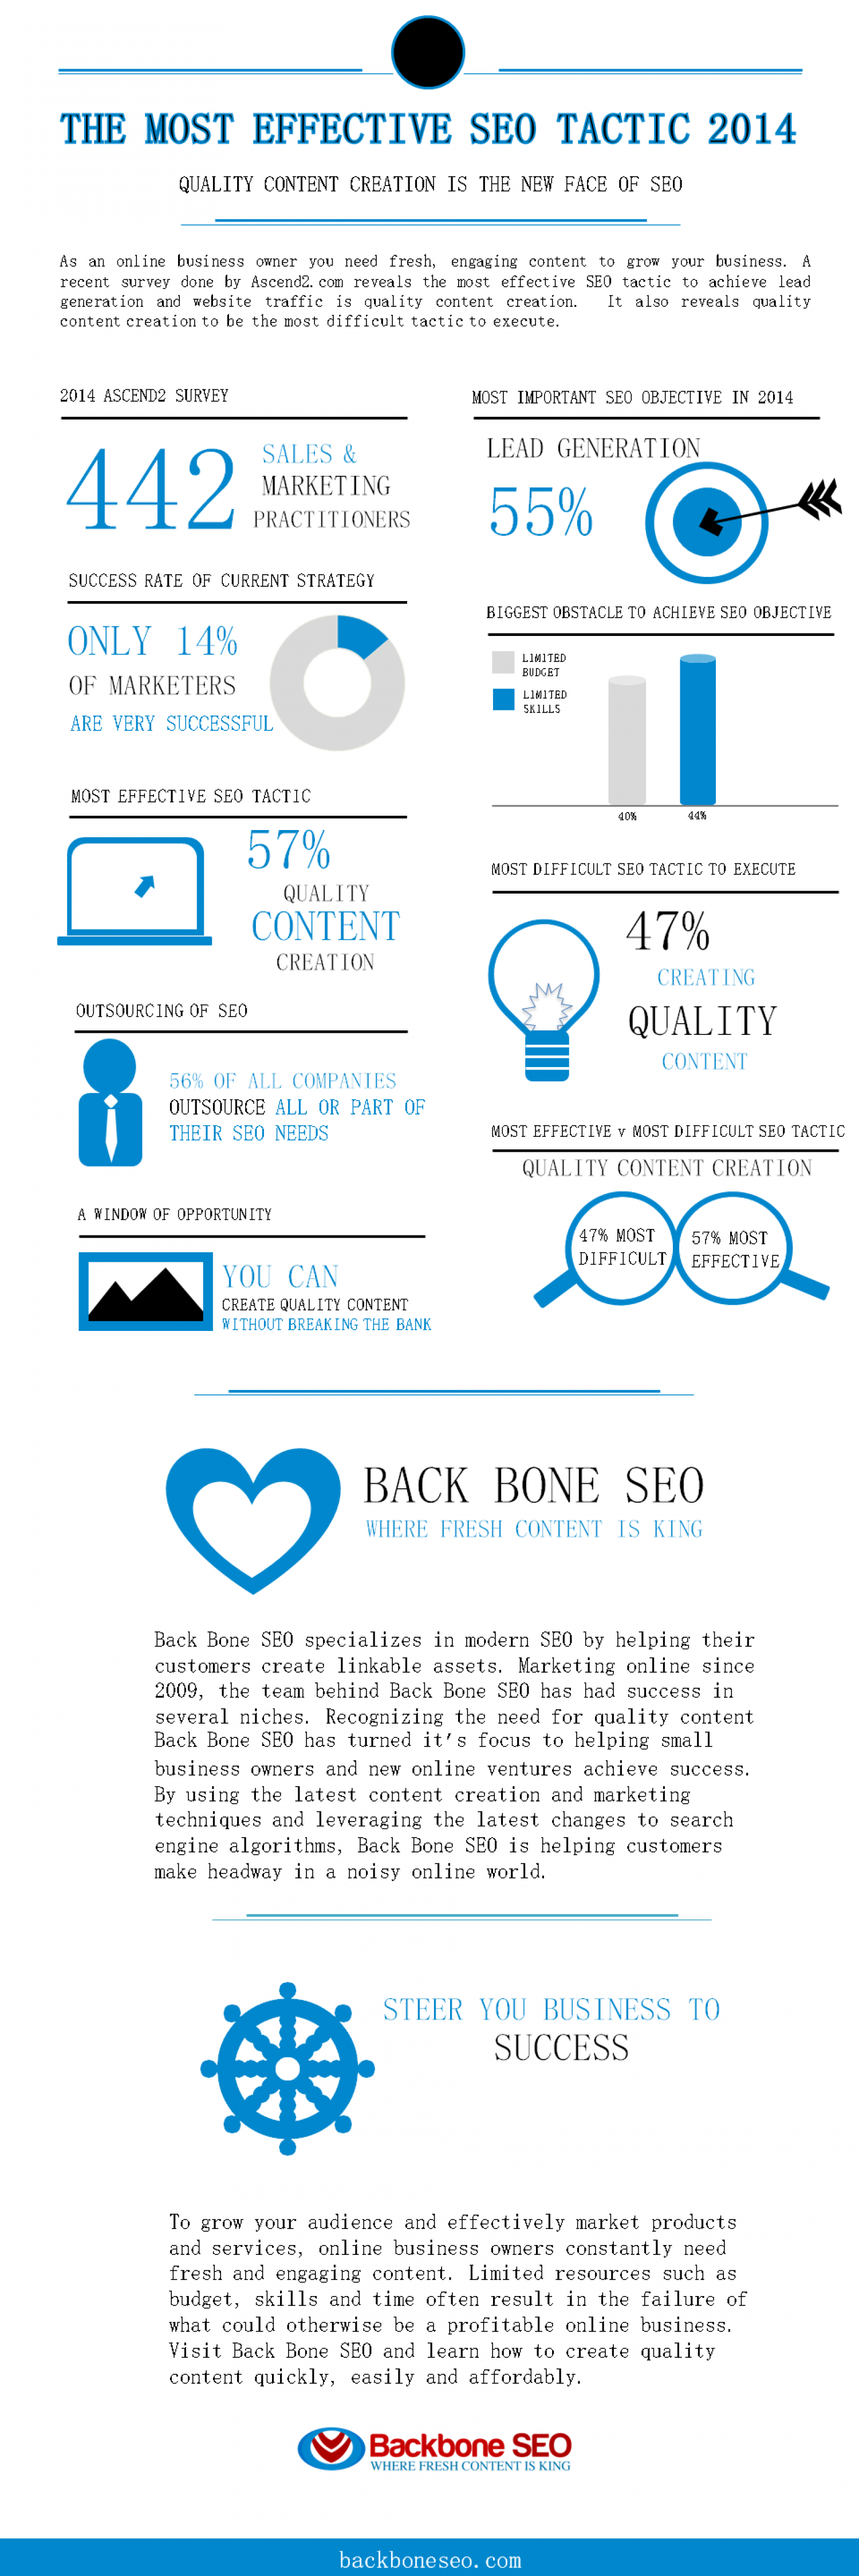 The Most Effective SEO Tactic 2014 Infographic